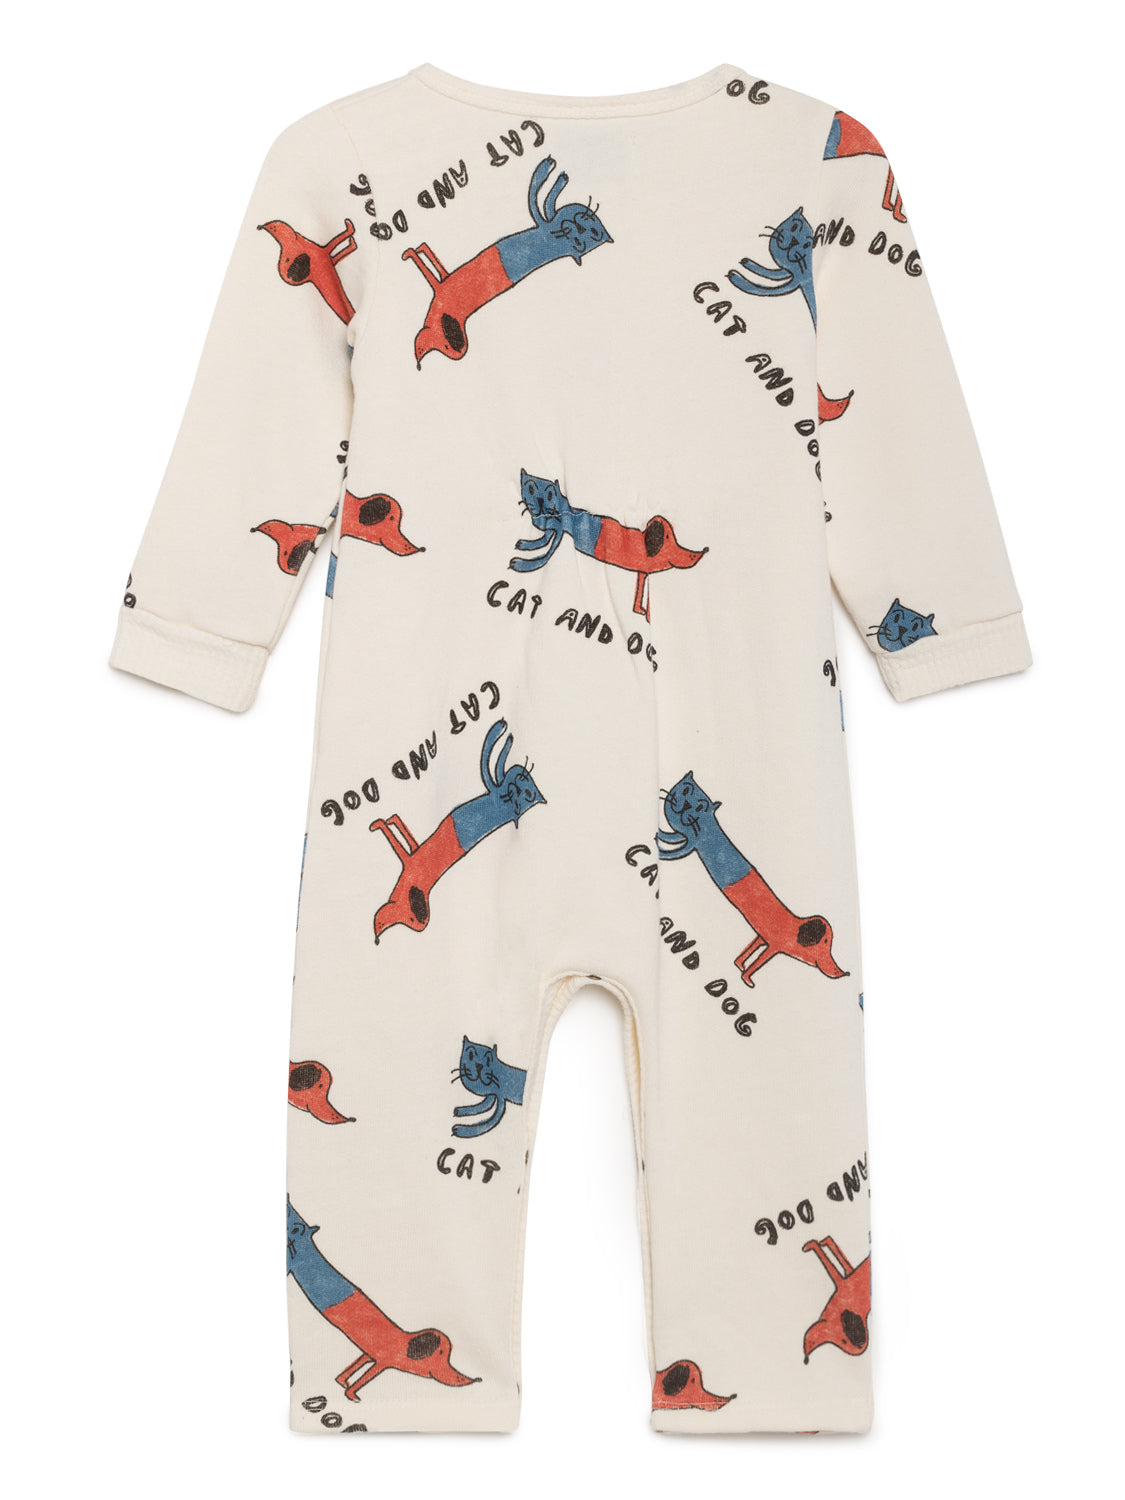 Cats & Dogs Baby Playsuit